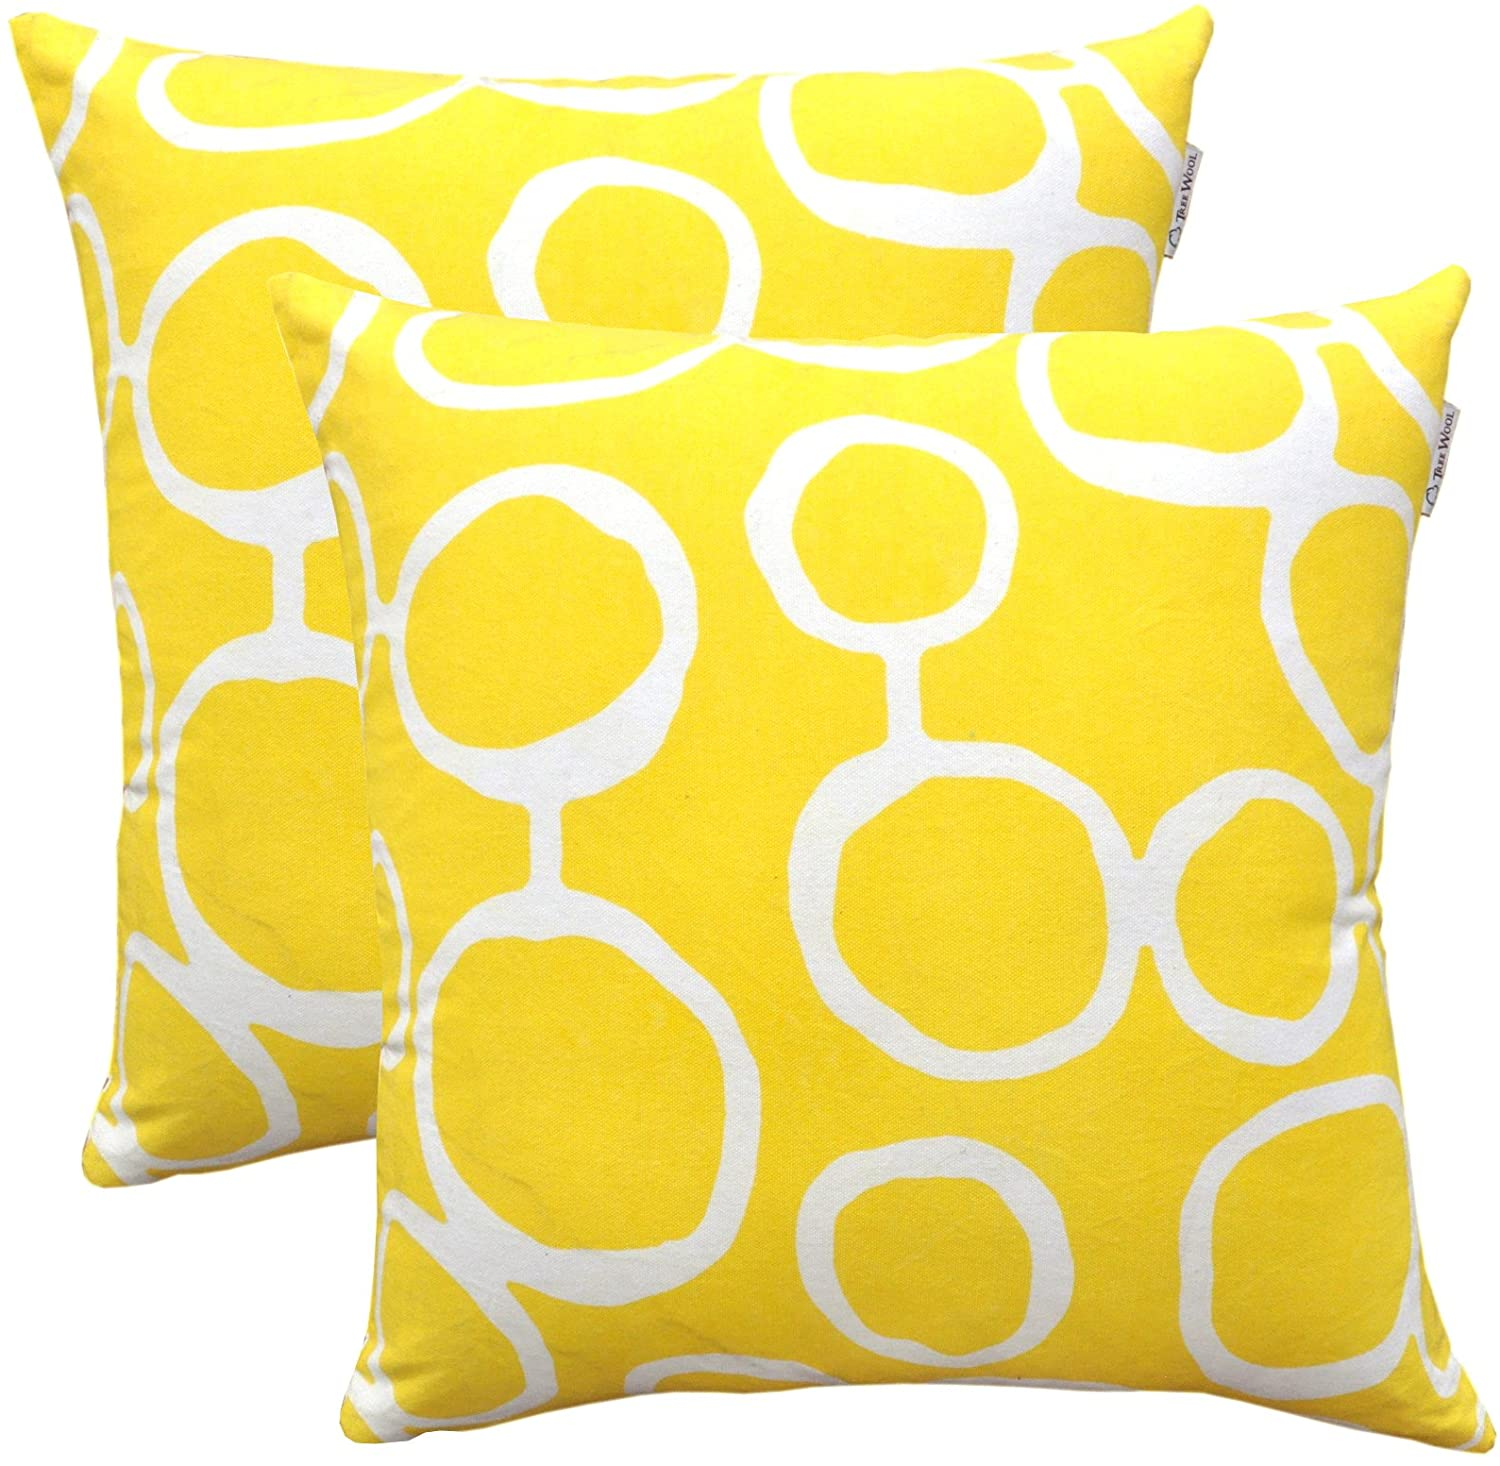 TreeWool, Pack of 2, Throw Pillow Cover Ringo Accent 100% Cotton Decorative Square Cushion Cases (18 x 18 Inches / 45 x 45 cm; Yellow)